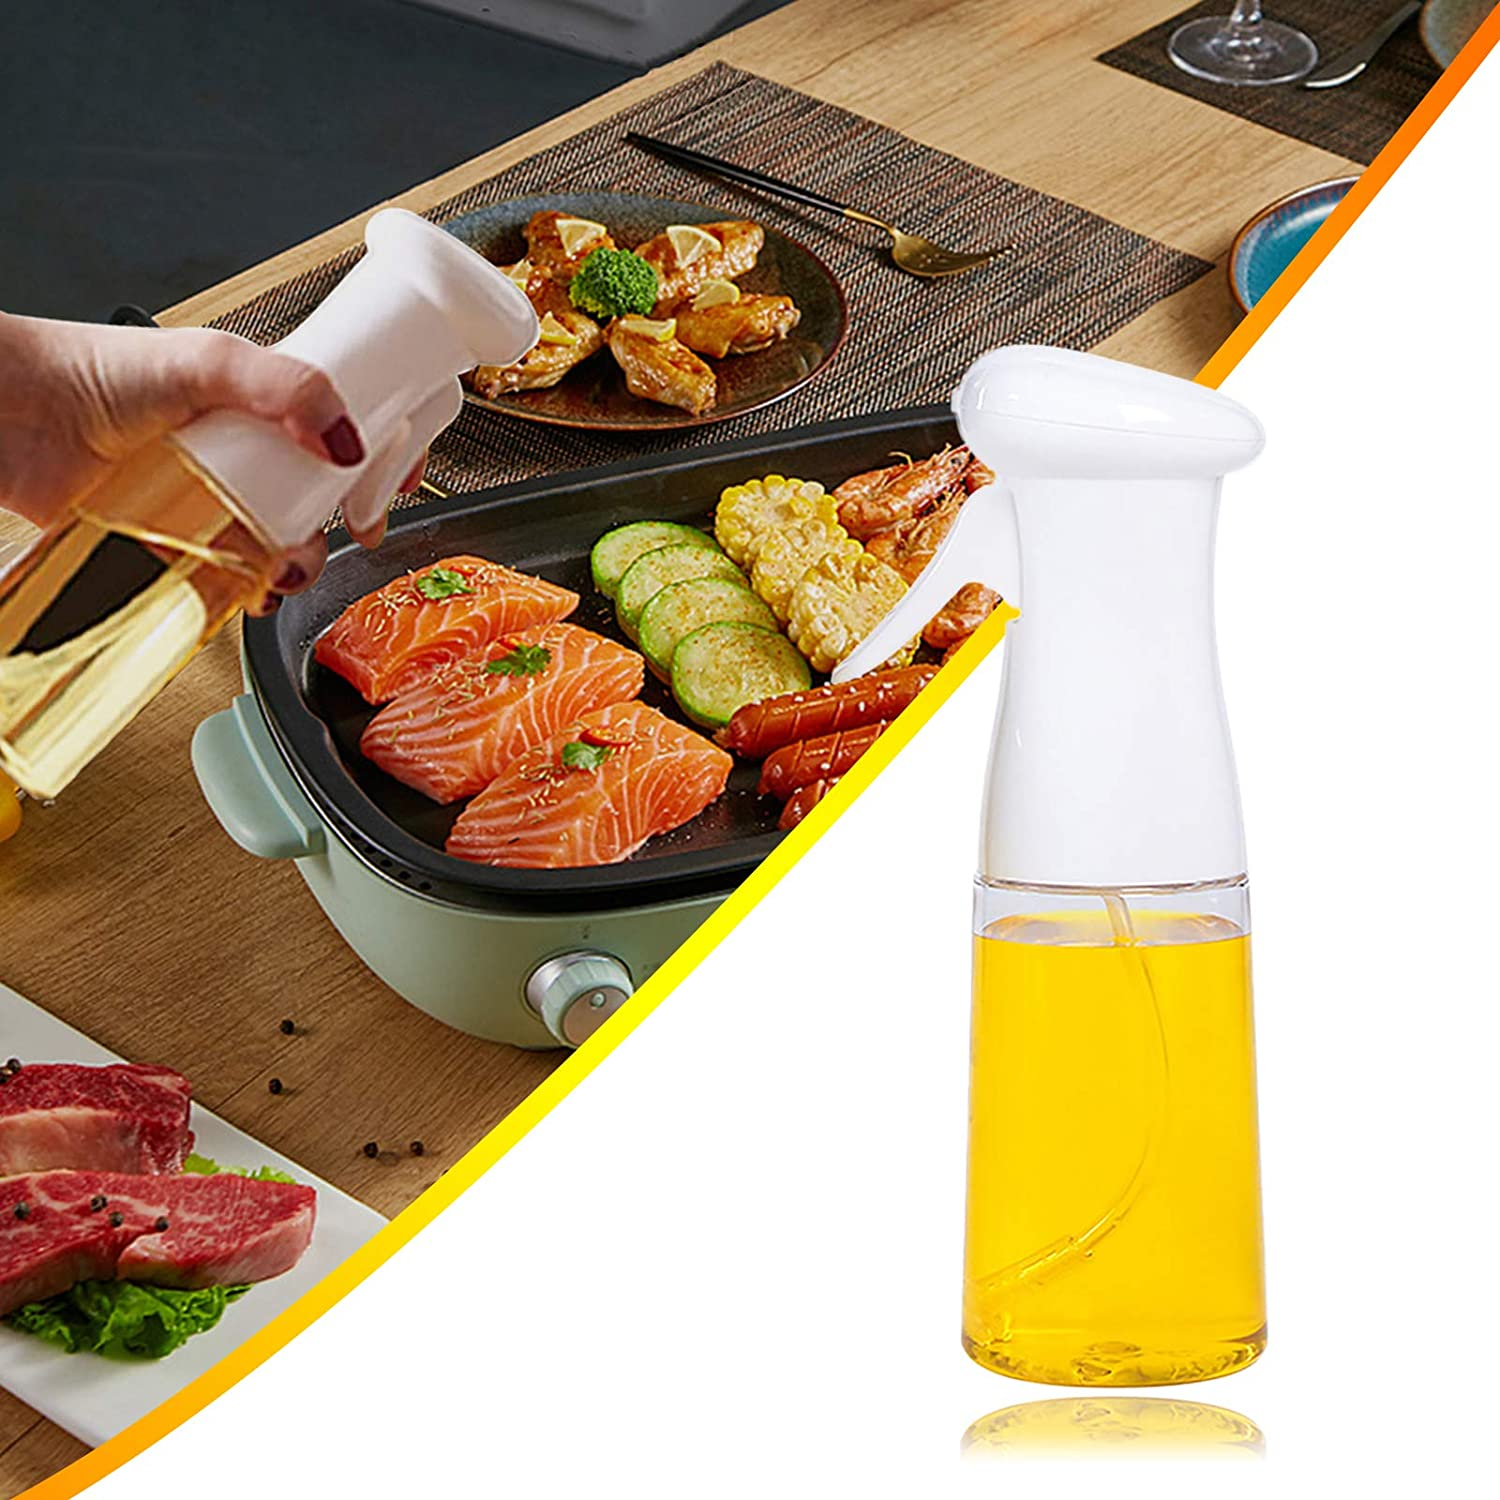 Olive Oil Sprayer,Oil Spray for Cooking,Vinegar Sprayer,BBQ Cooking Spray Bottle for Grilling Cooking,BBQ,Salad,Baking,Roasting,Grilling,Frying,Easy to Use (White)